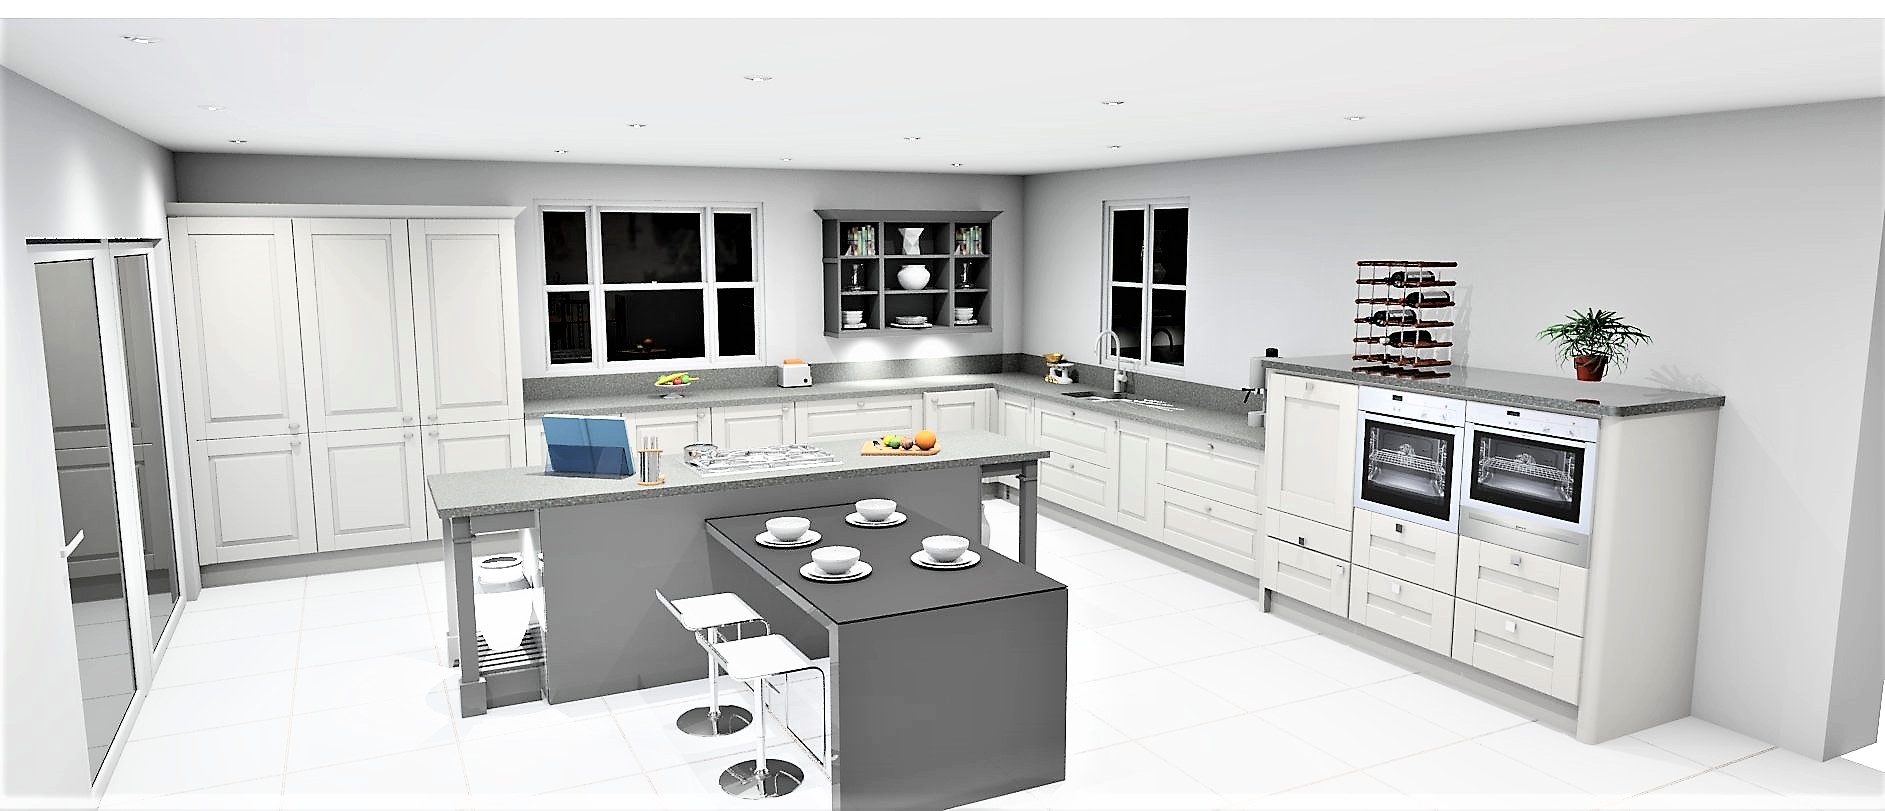 Hartigan Kitchens Cork Kitchen Specialists Painted Kitchens Shaker Kitchens White Kitchens Cad Kitchen Designs Kitchens And Bedrooms Cork Traditional Kitchens Contemporary Kitchens